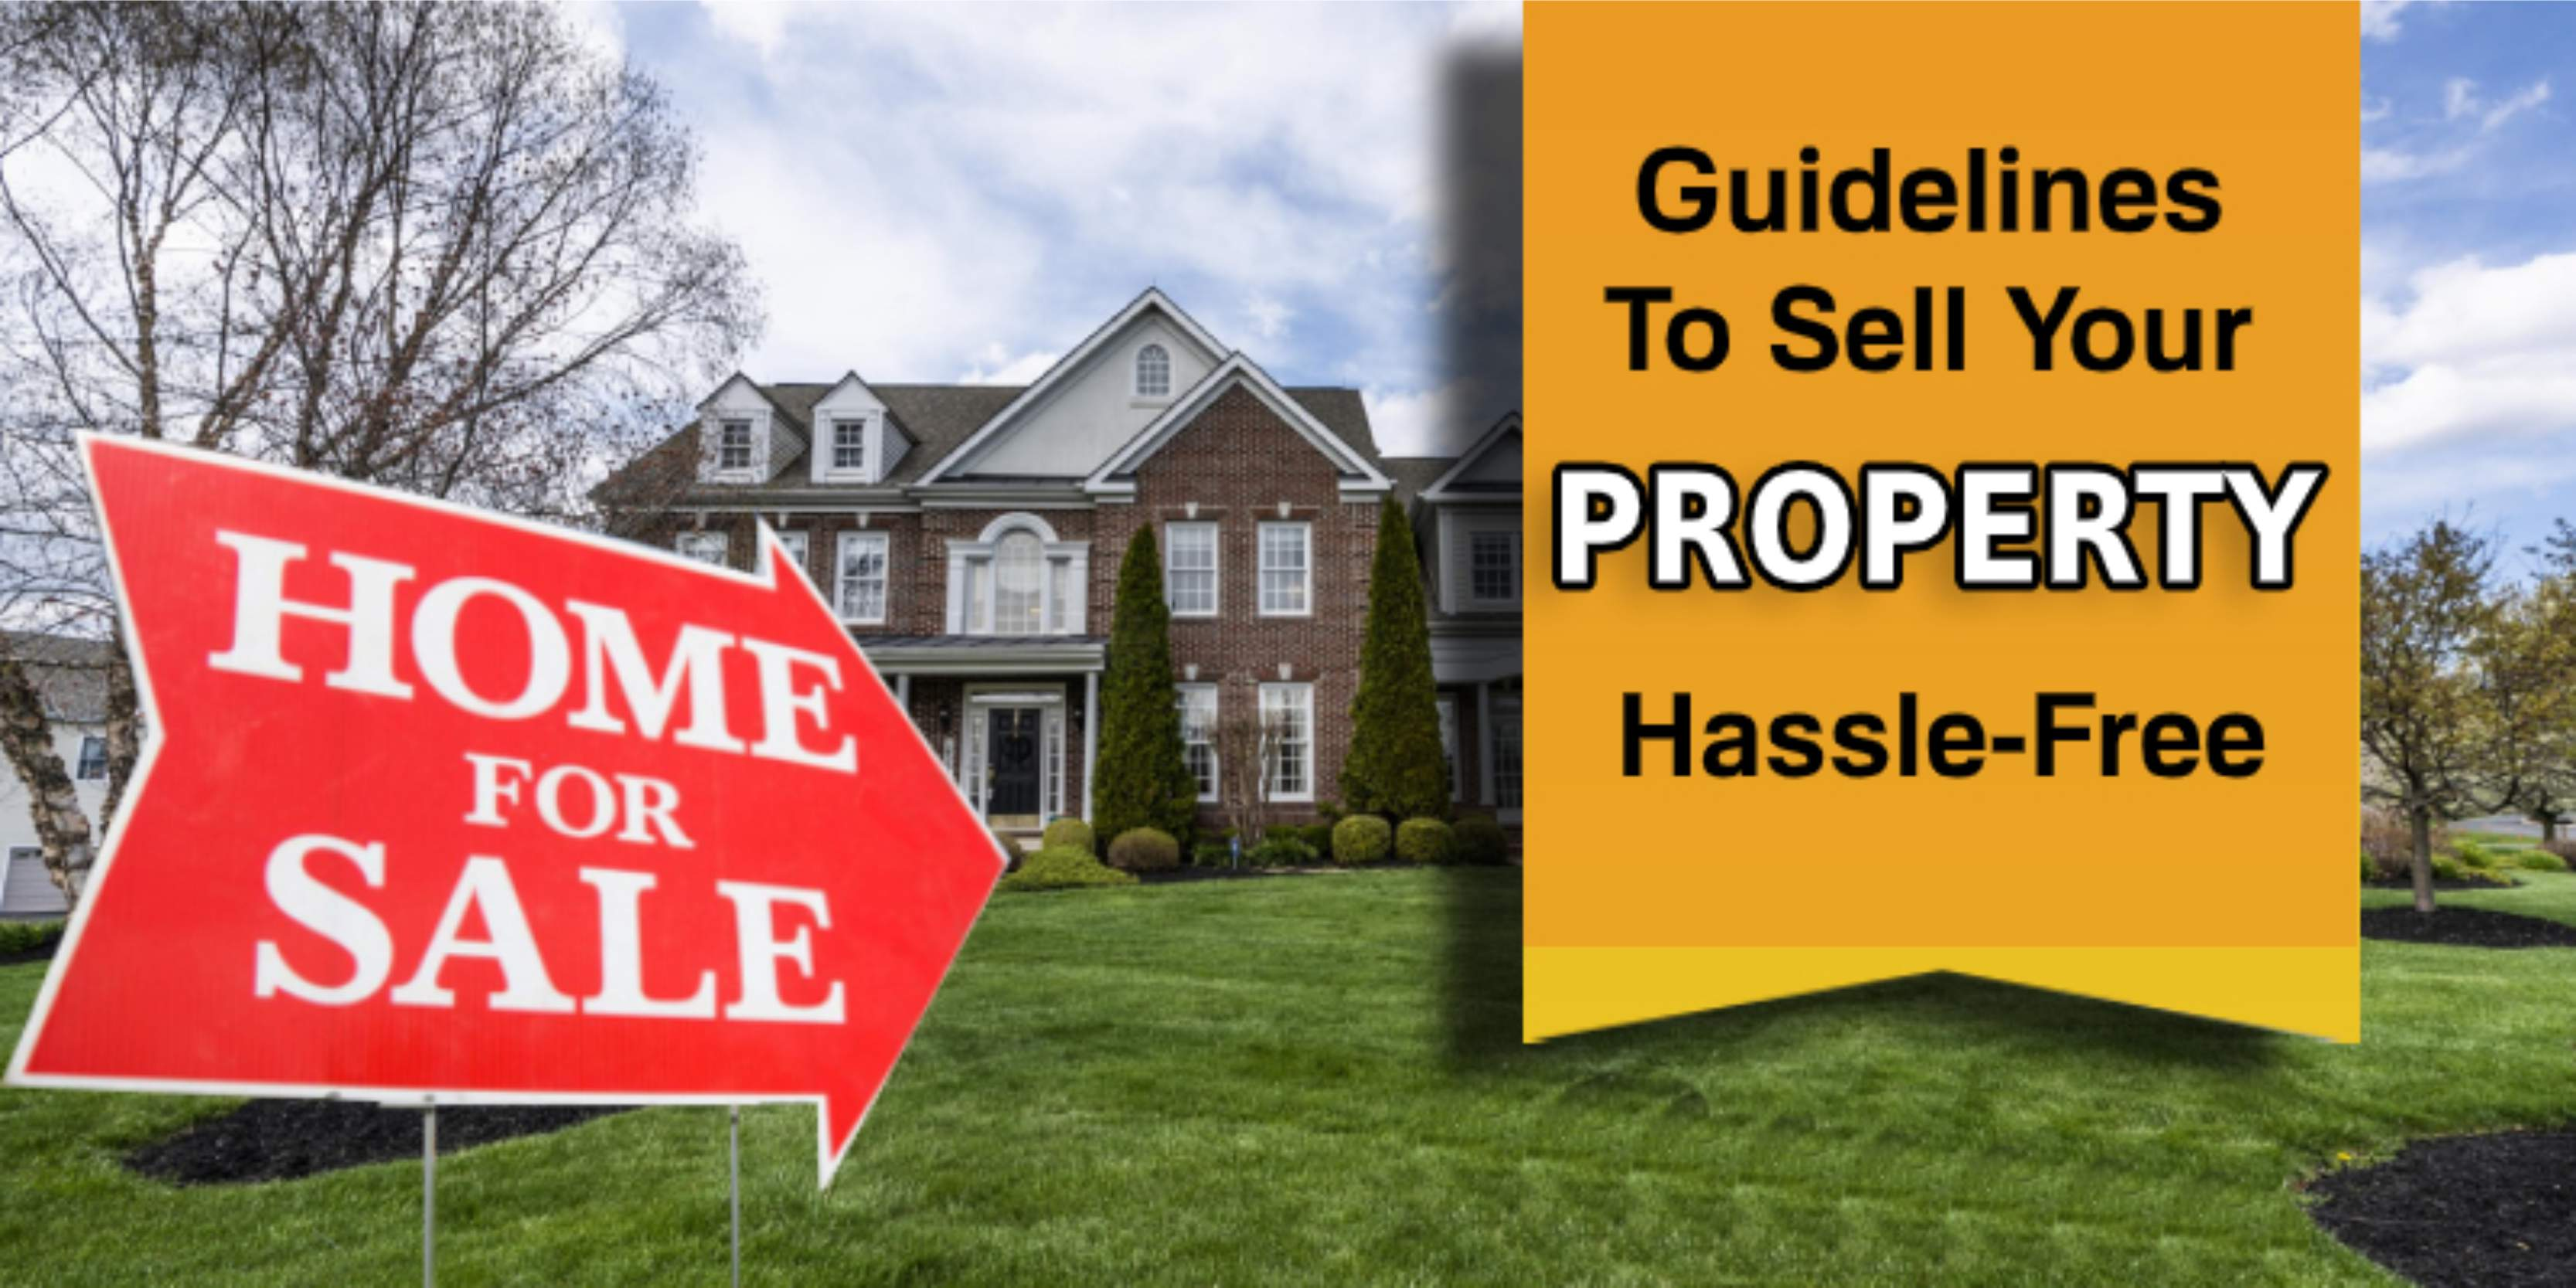 Guidelines To Sell Your Property Hassle-Free